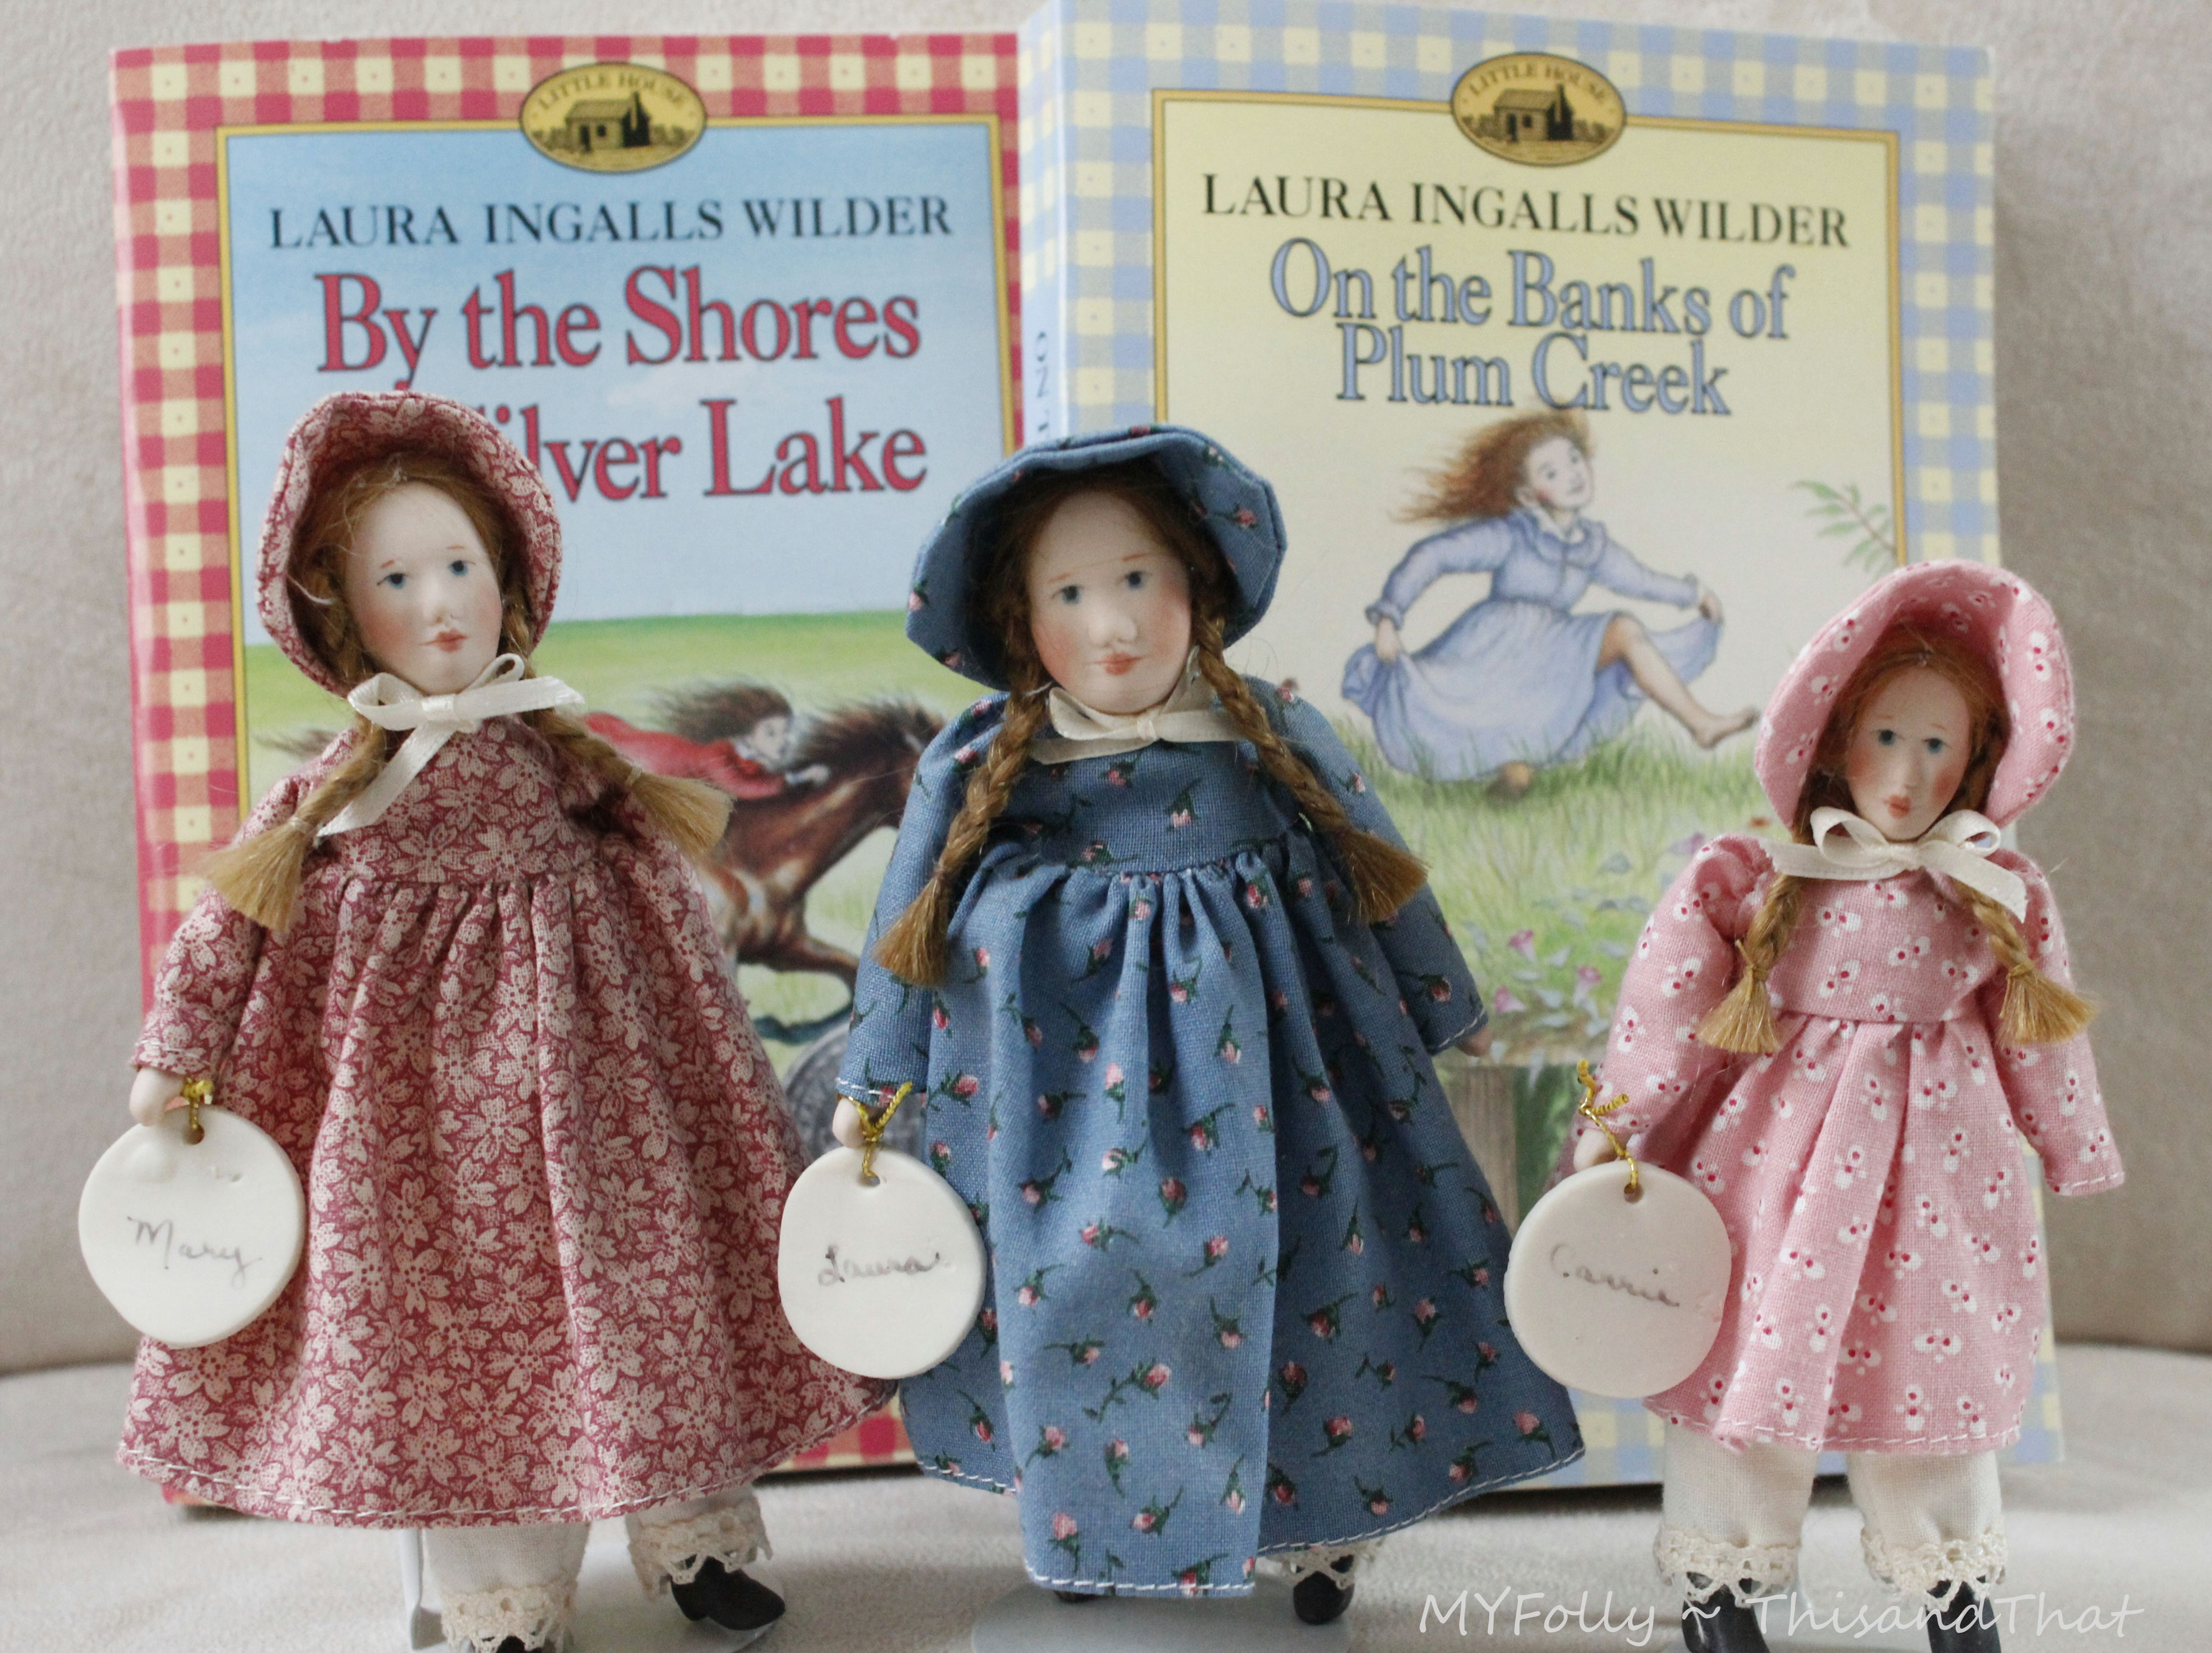 Laura Ingalls Wilder - Daily Dish with Foodie Friends Friday